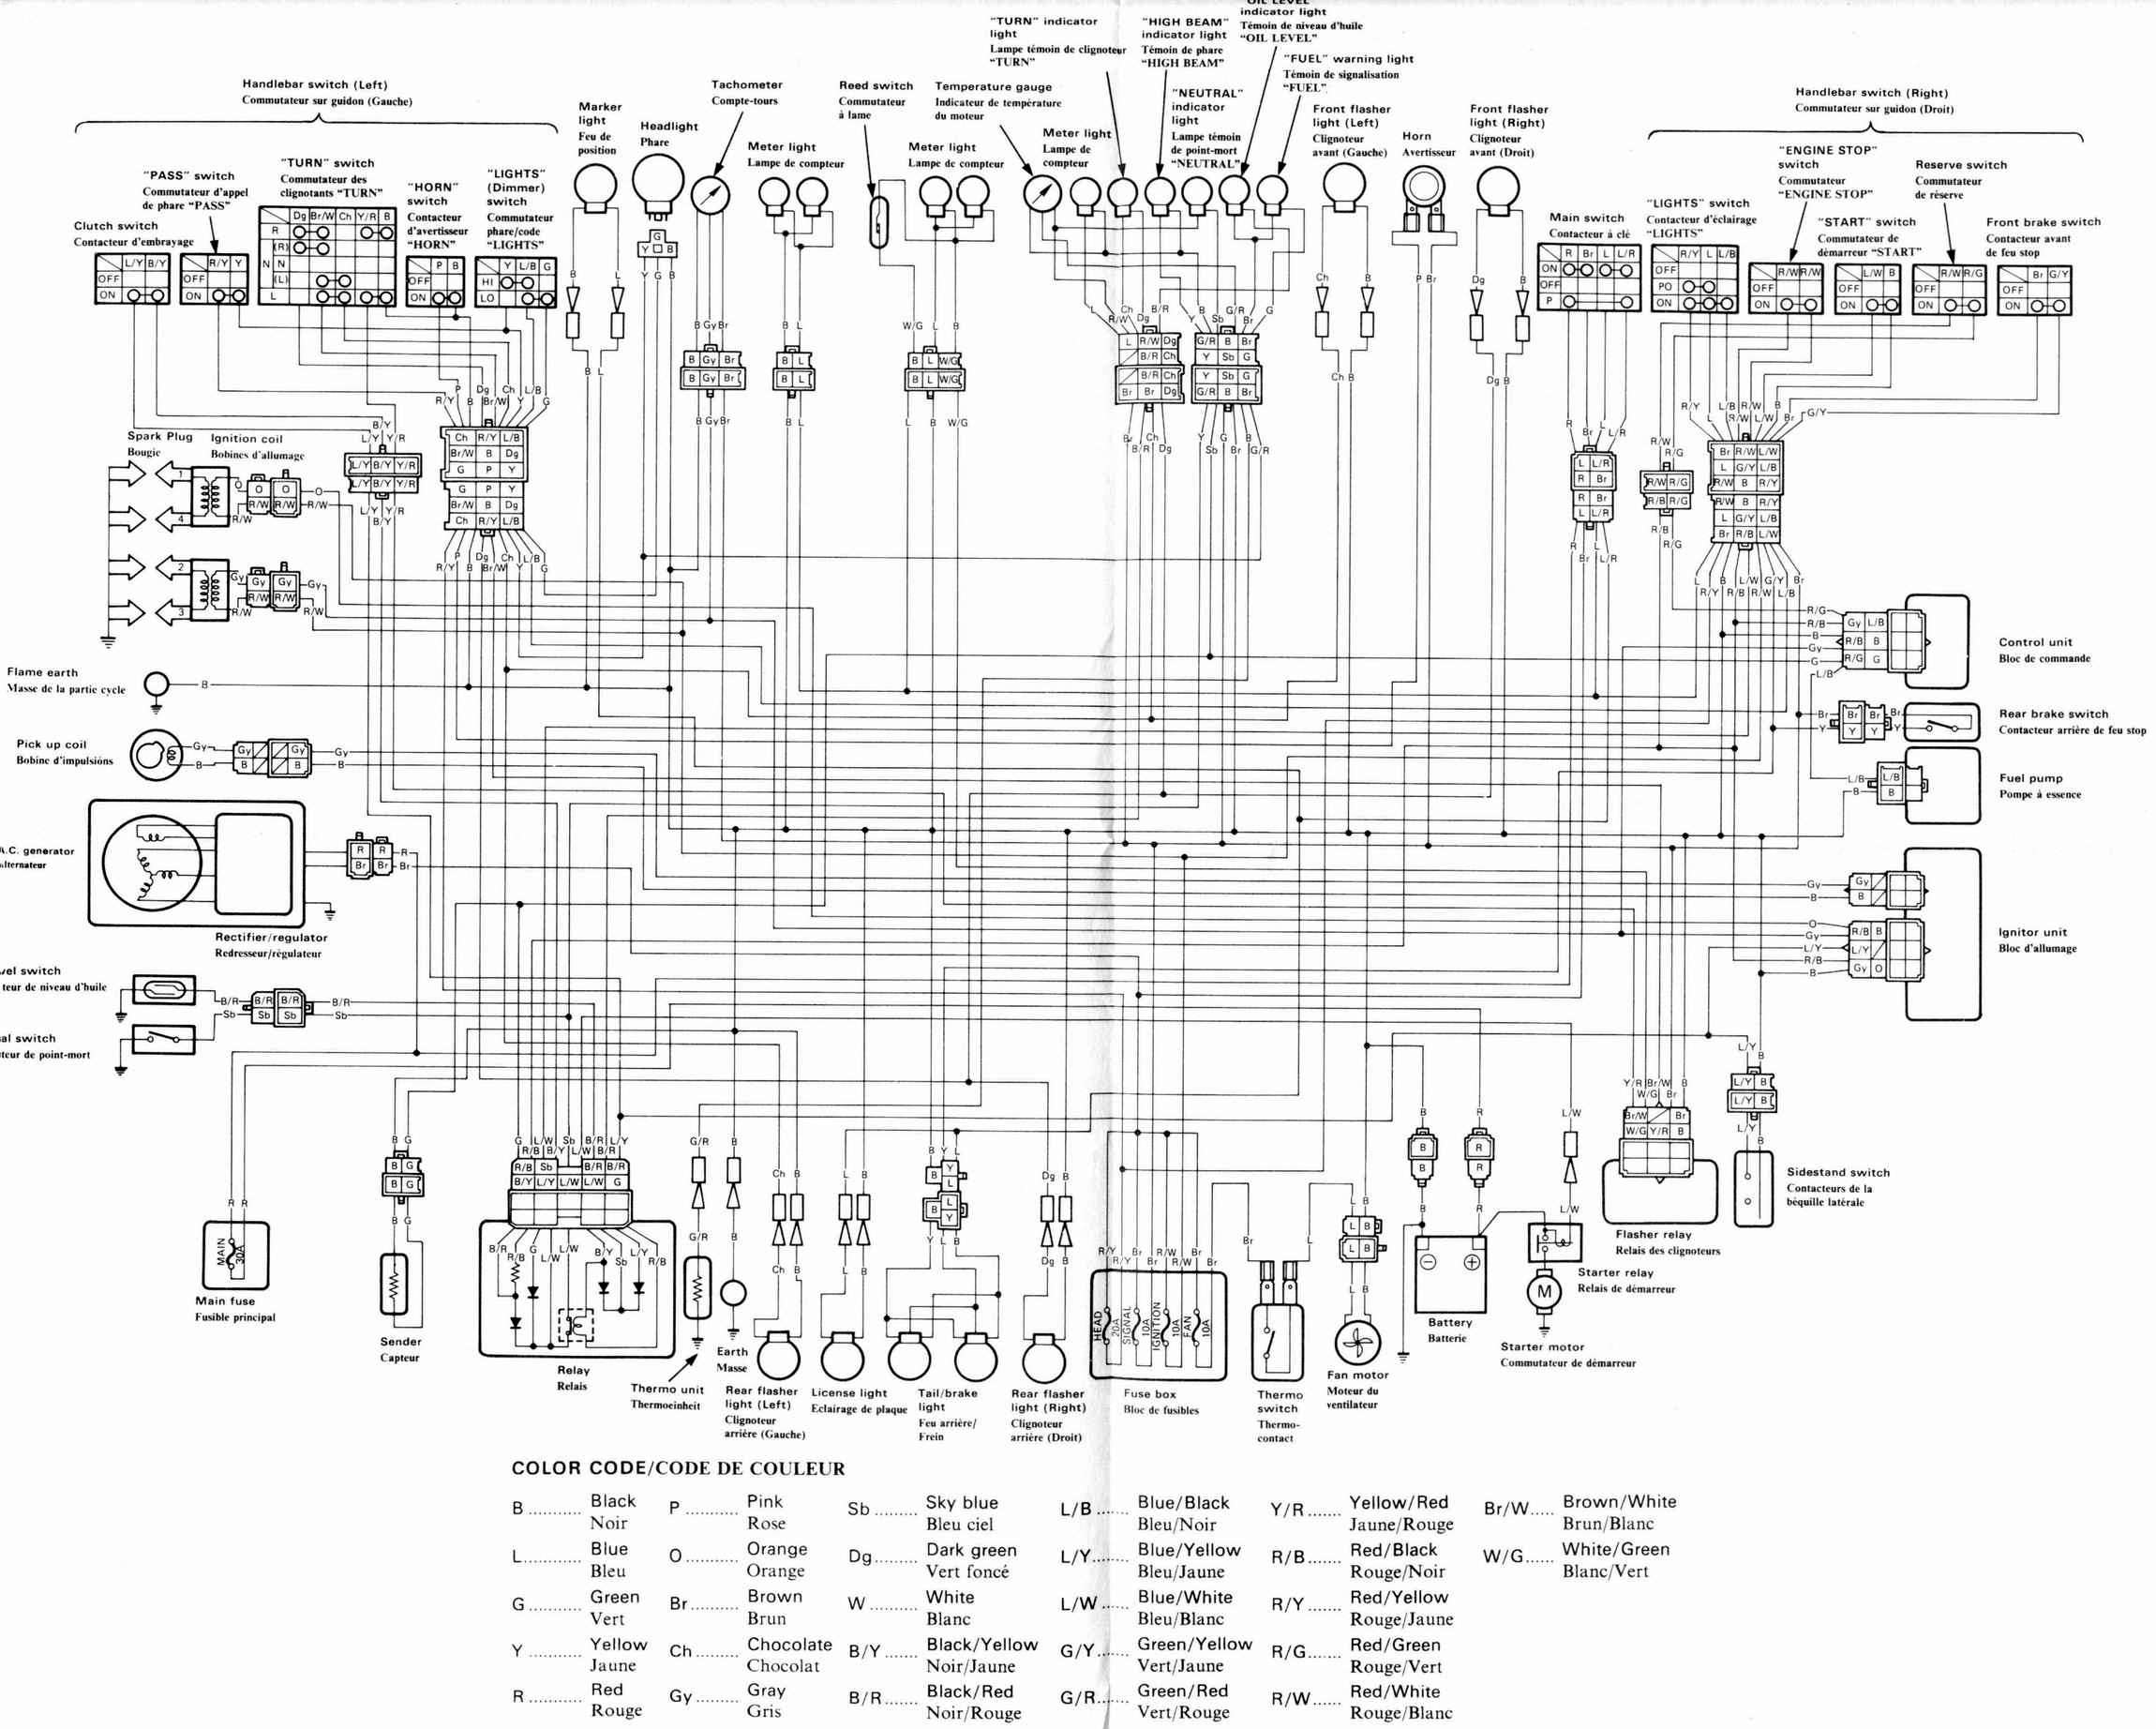 fzx700 wiring diagram